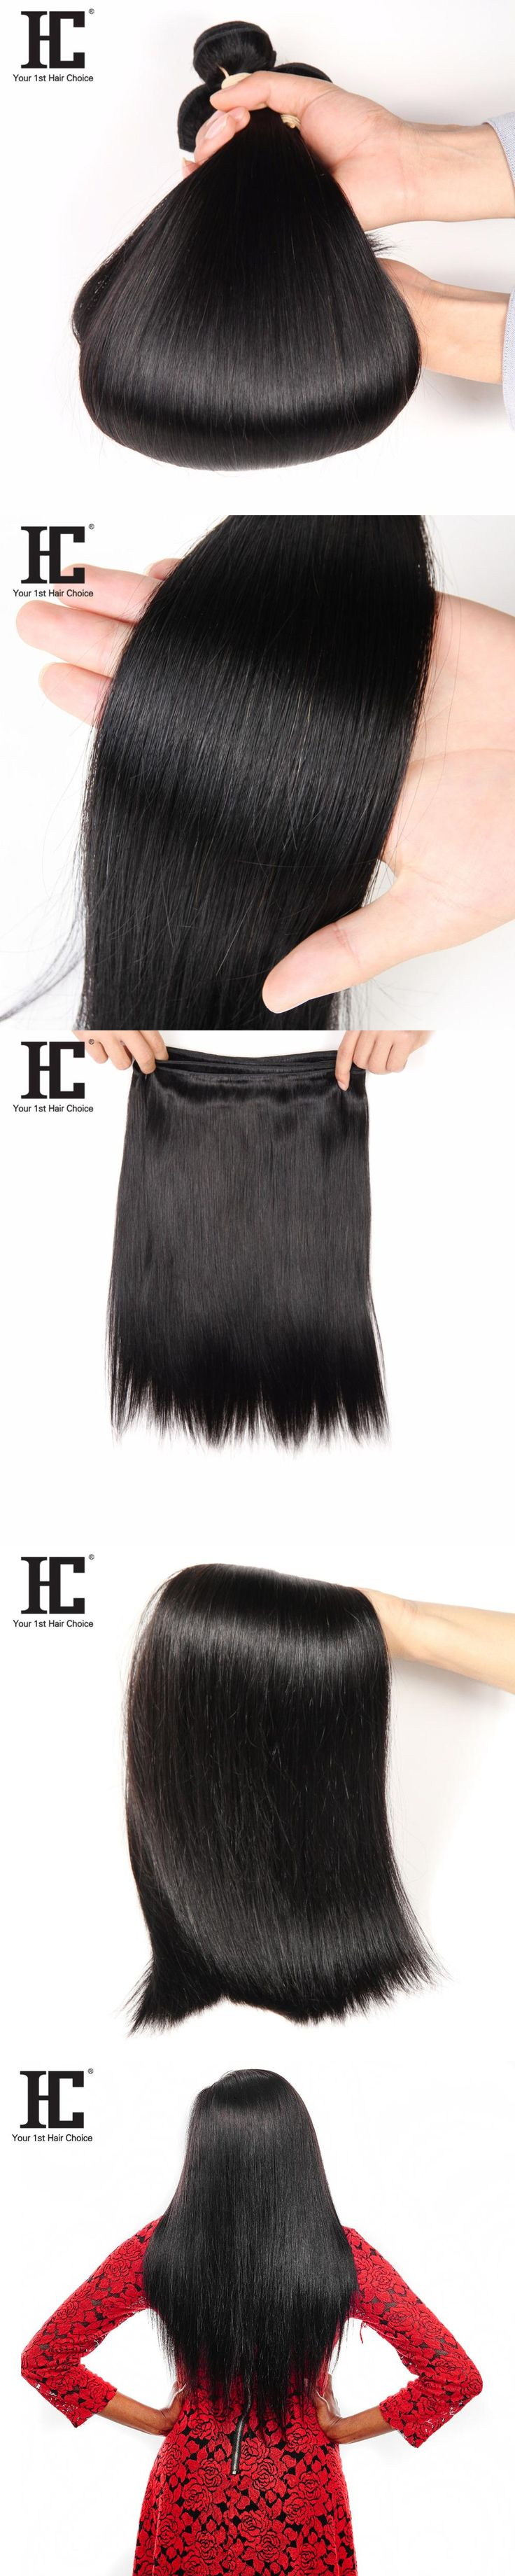 HC Remy Malaysian Hair 1 Bundle 100g Straight Human Hair Extension Natural Black Can Be Dyed and Bleached 10-28inch